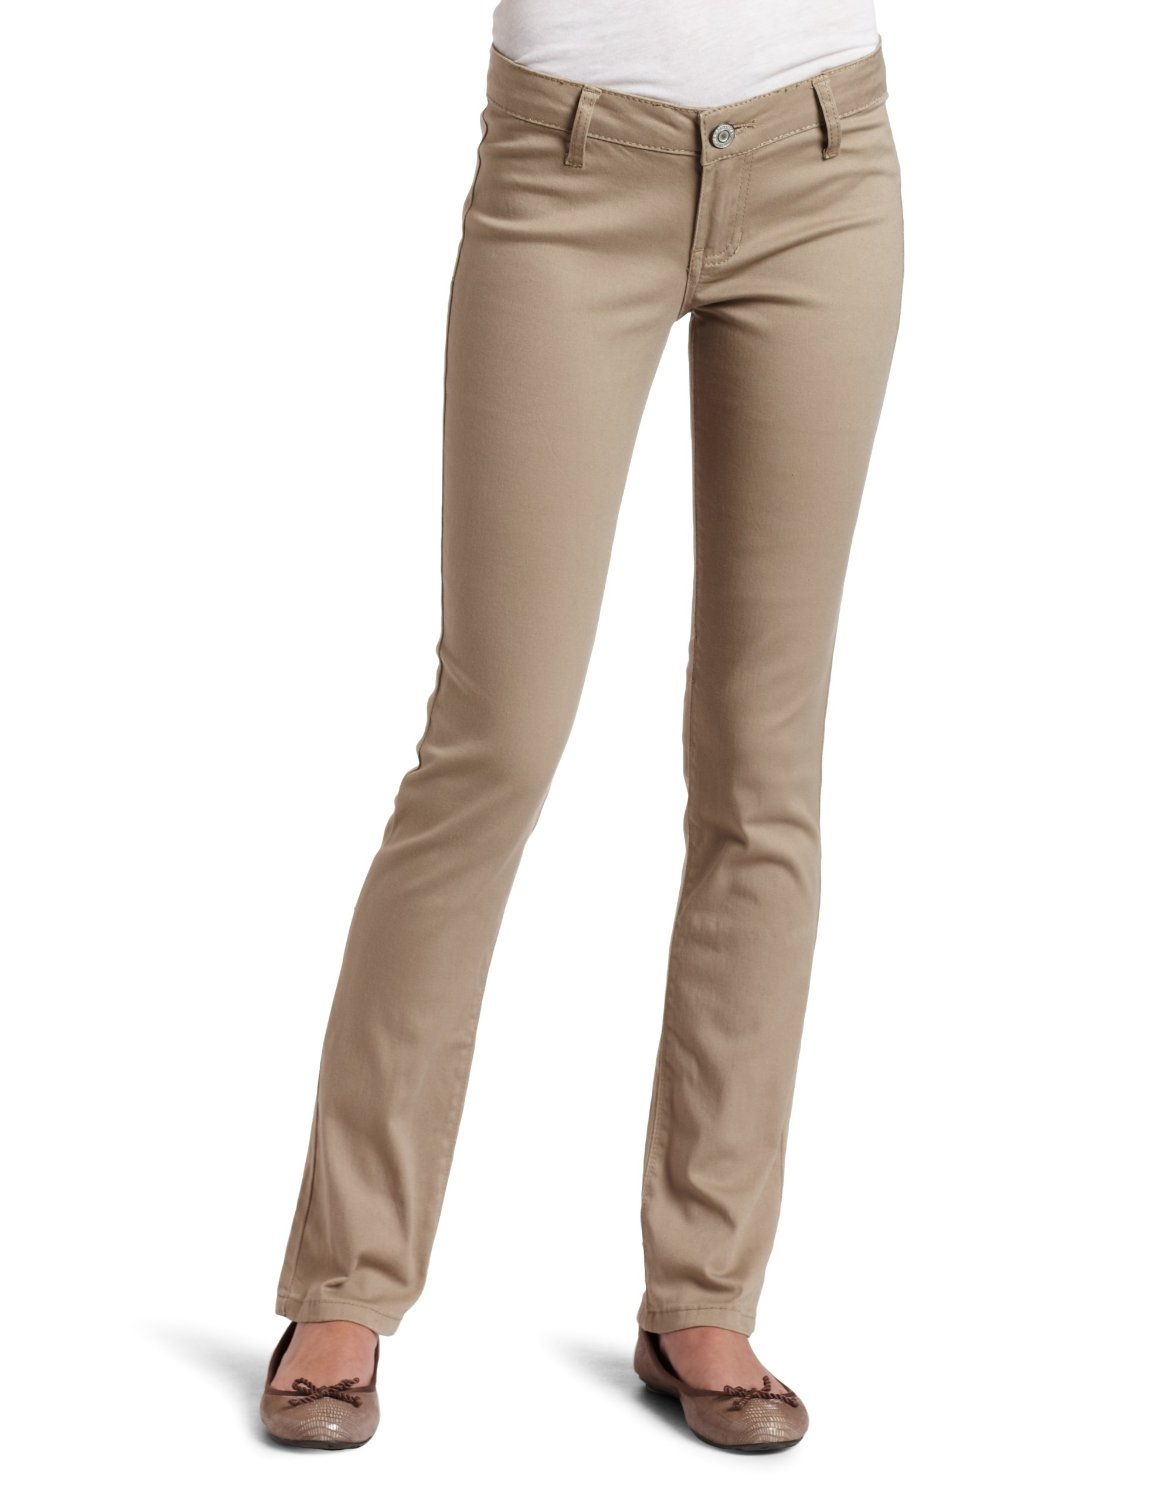 All About Cute Khaki Pants for Women - Gustdi Blog: October 2012